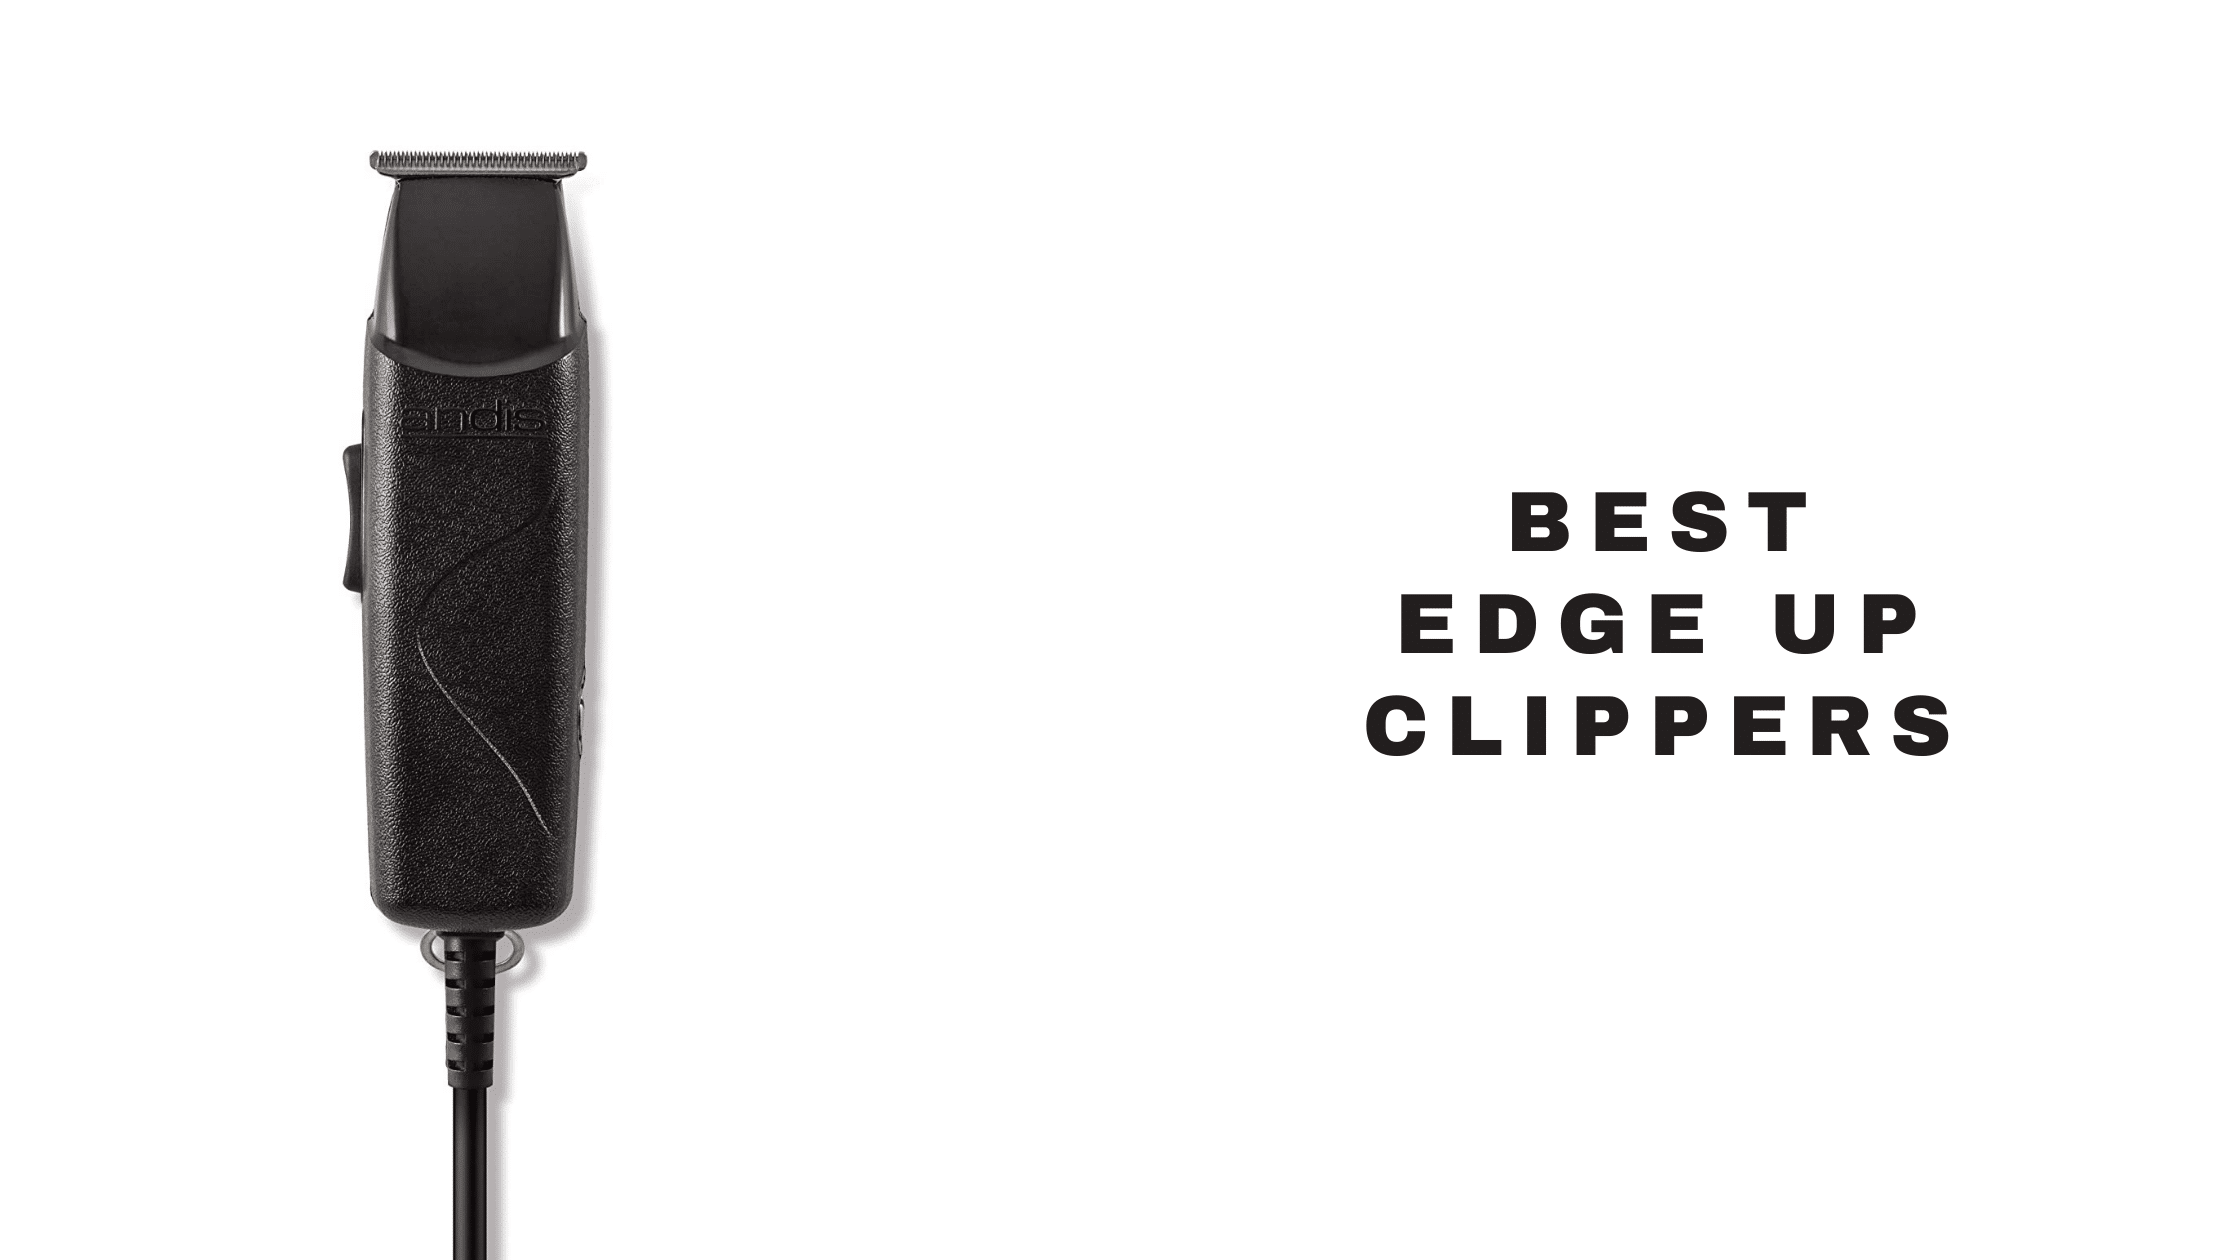 Best Edge Up Clippers 2021